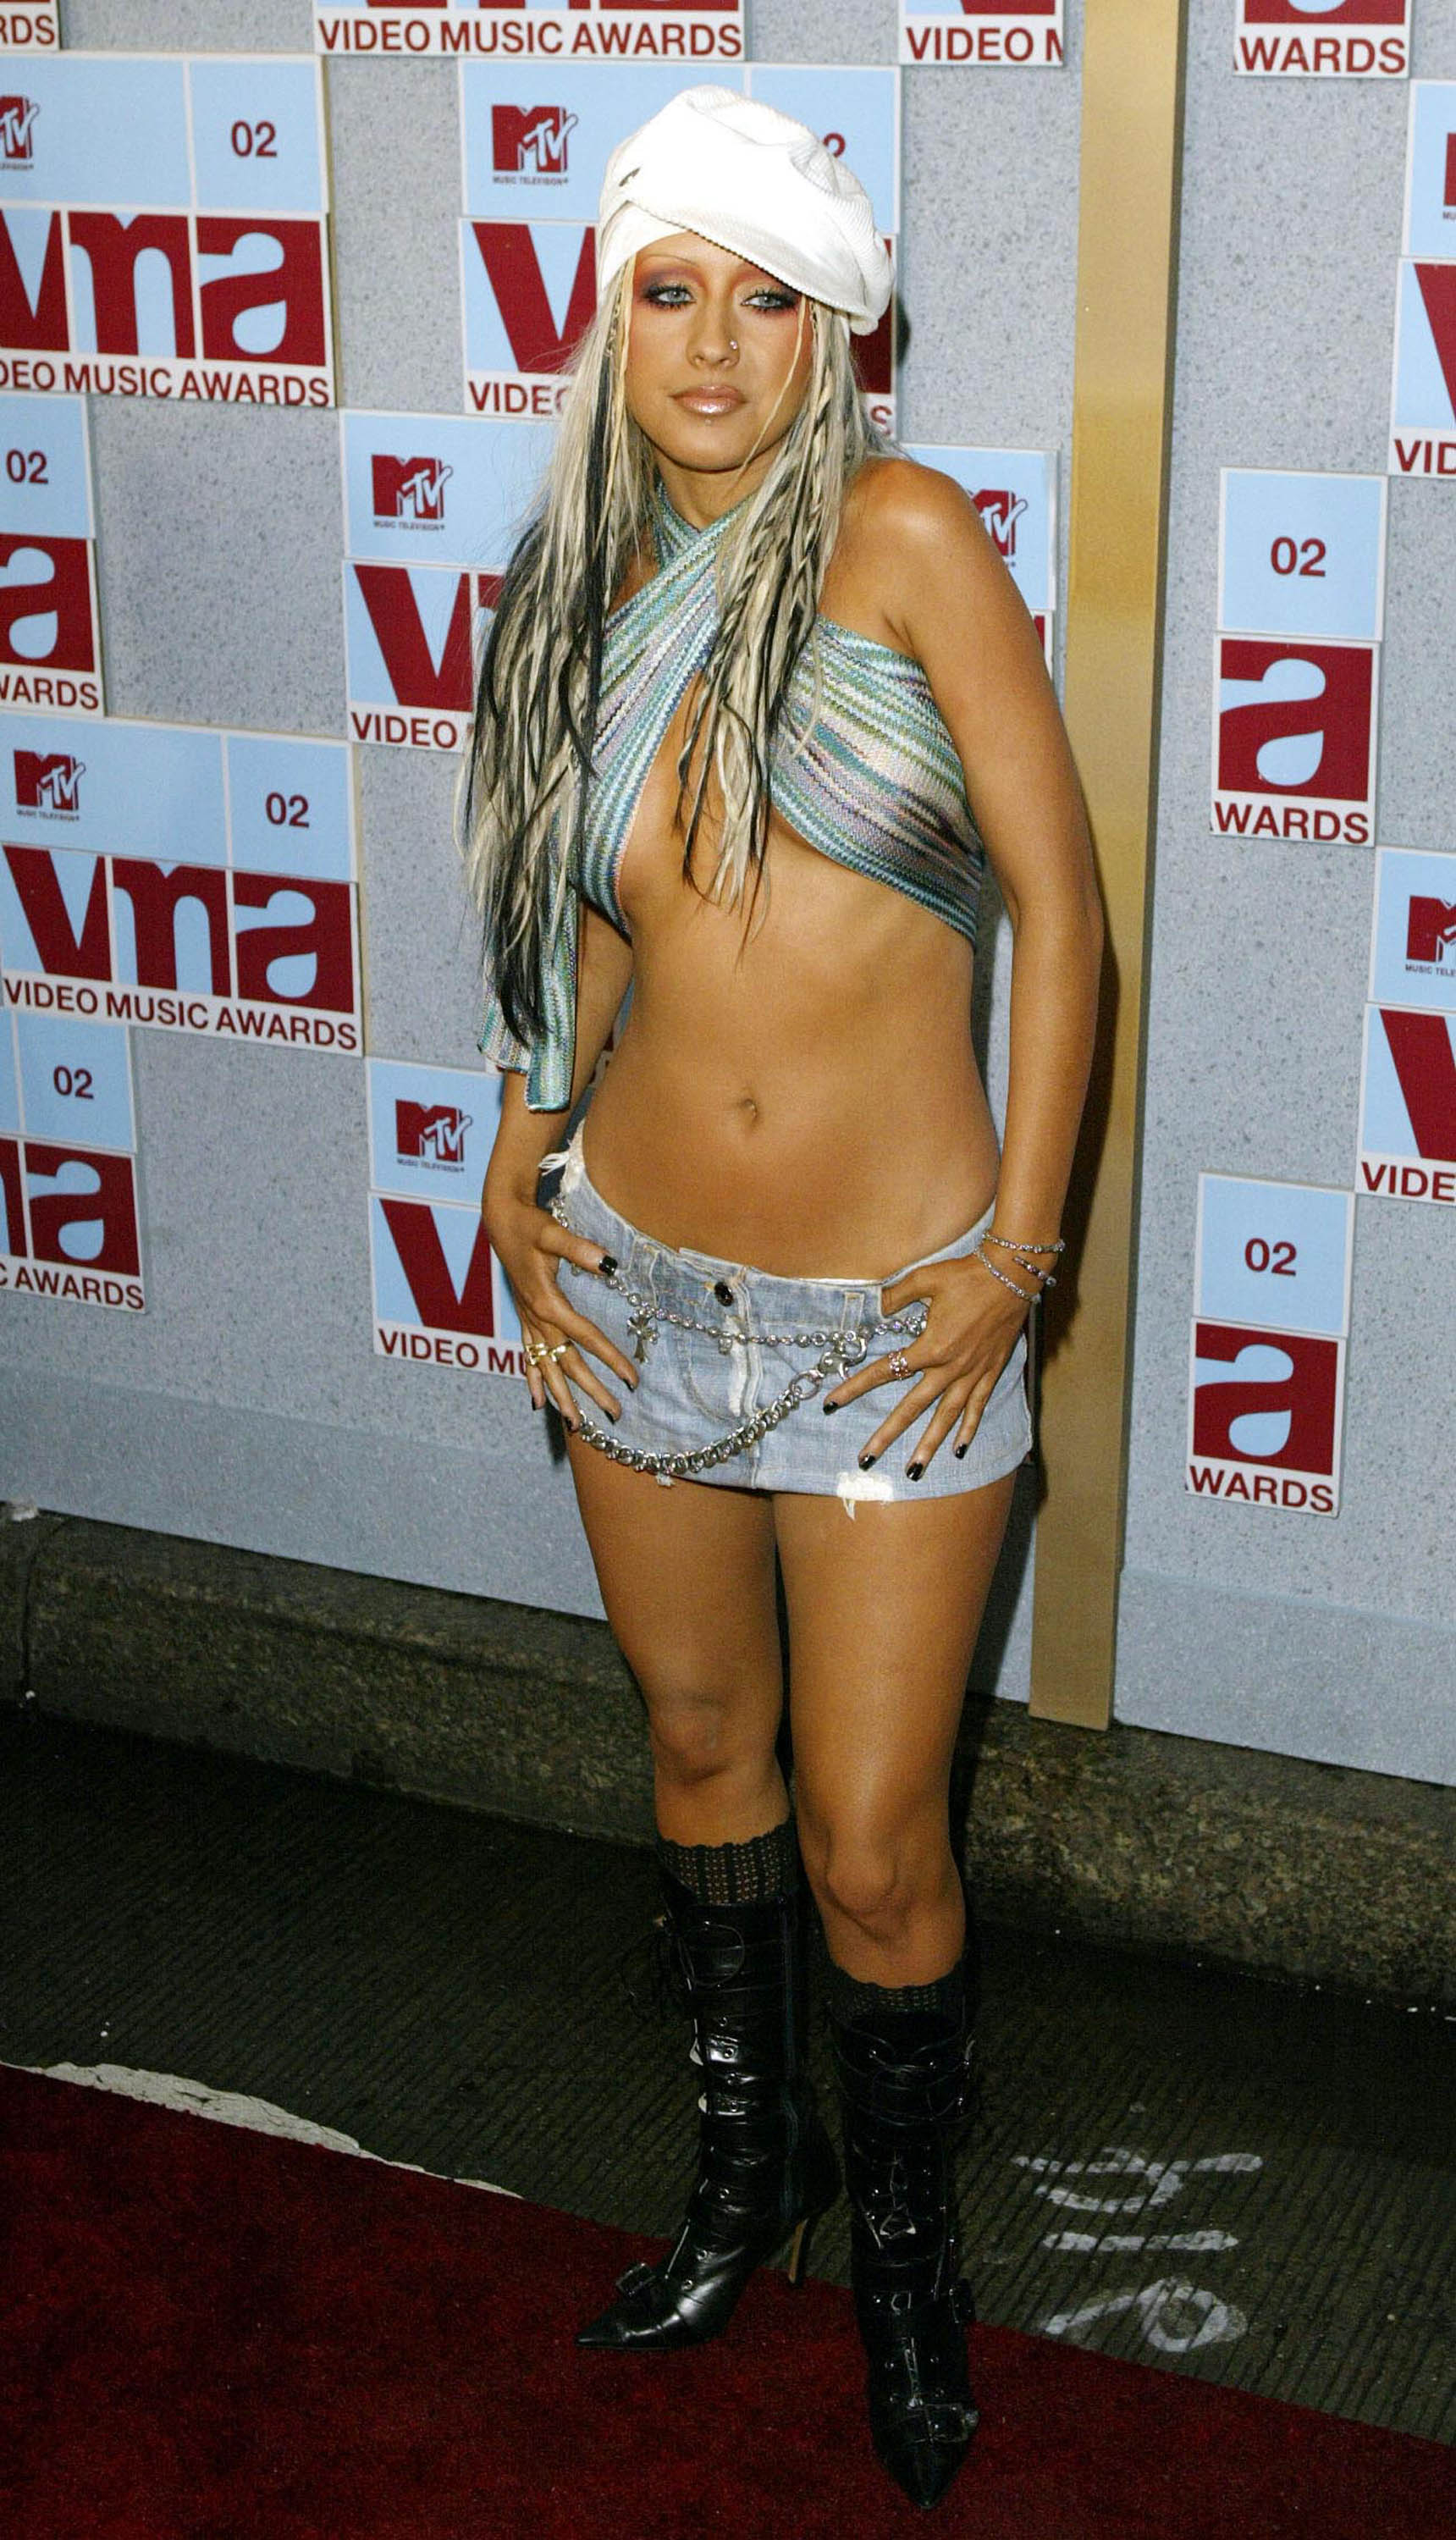 NEW YORK - AUGUST 29: American pop star Christina Aguilera arrives at the MTV Music Video Awards held at the Radio City Music Hall on August 29, 2002 in New York. (Photo by Dave Hogan/Getty Images)